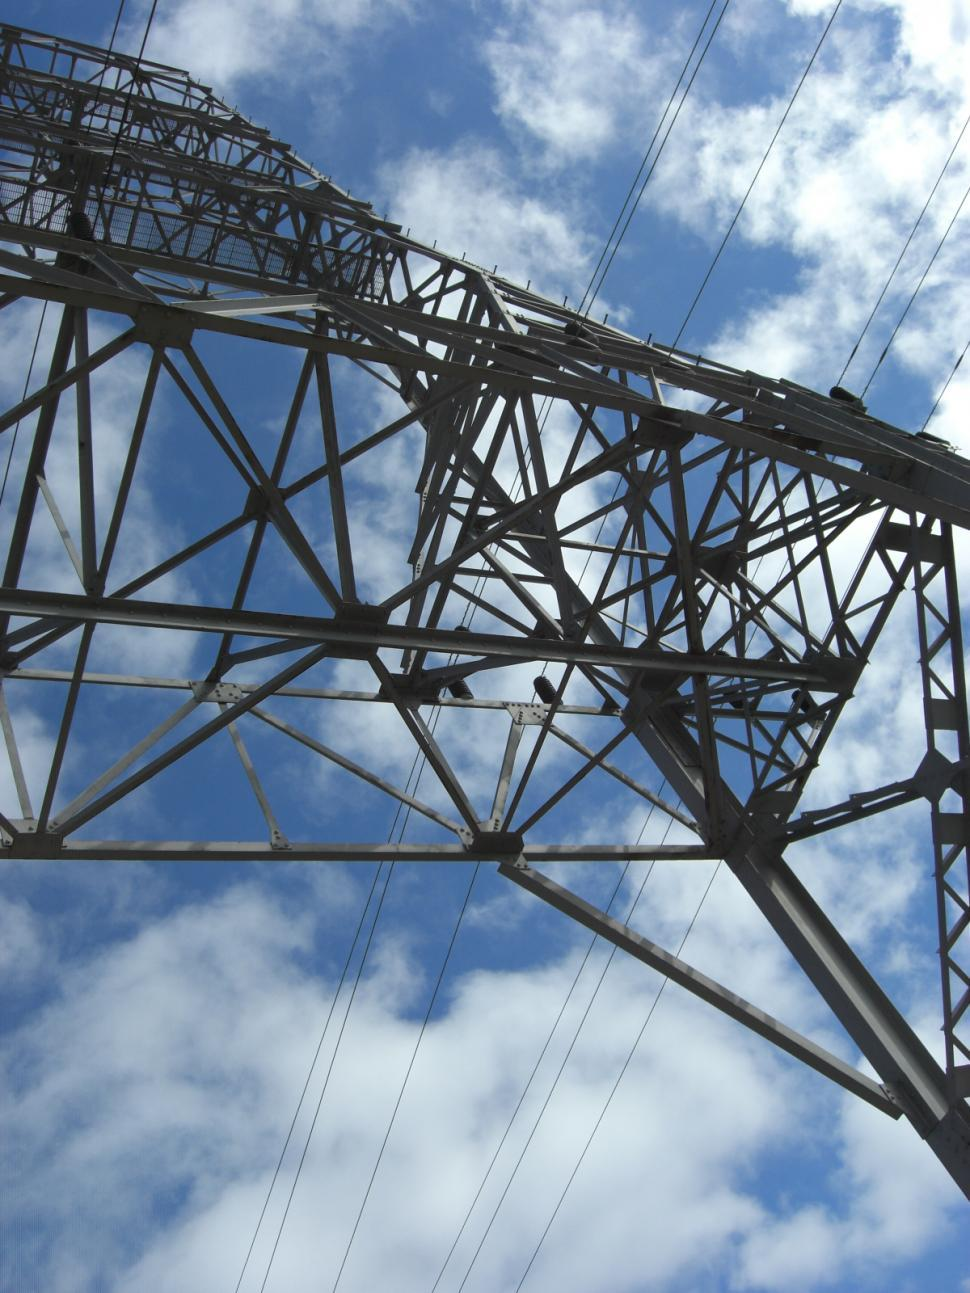 Download Free Stock Photo of Power Lines/Transformers